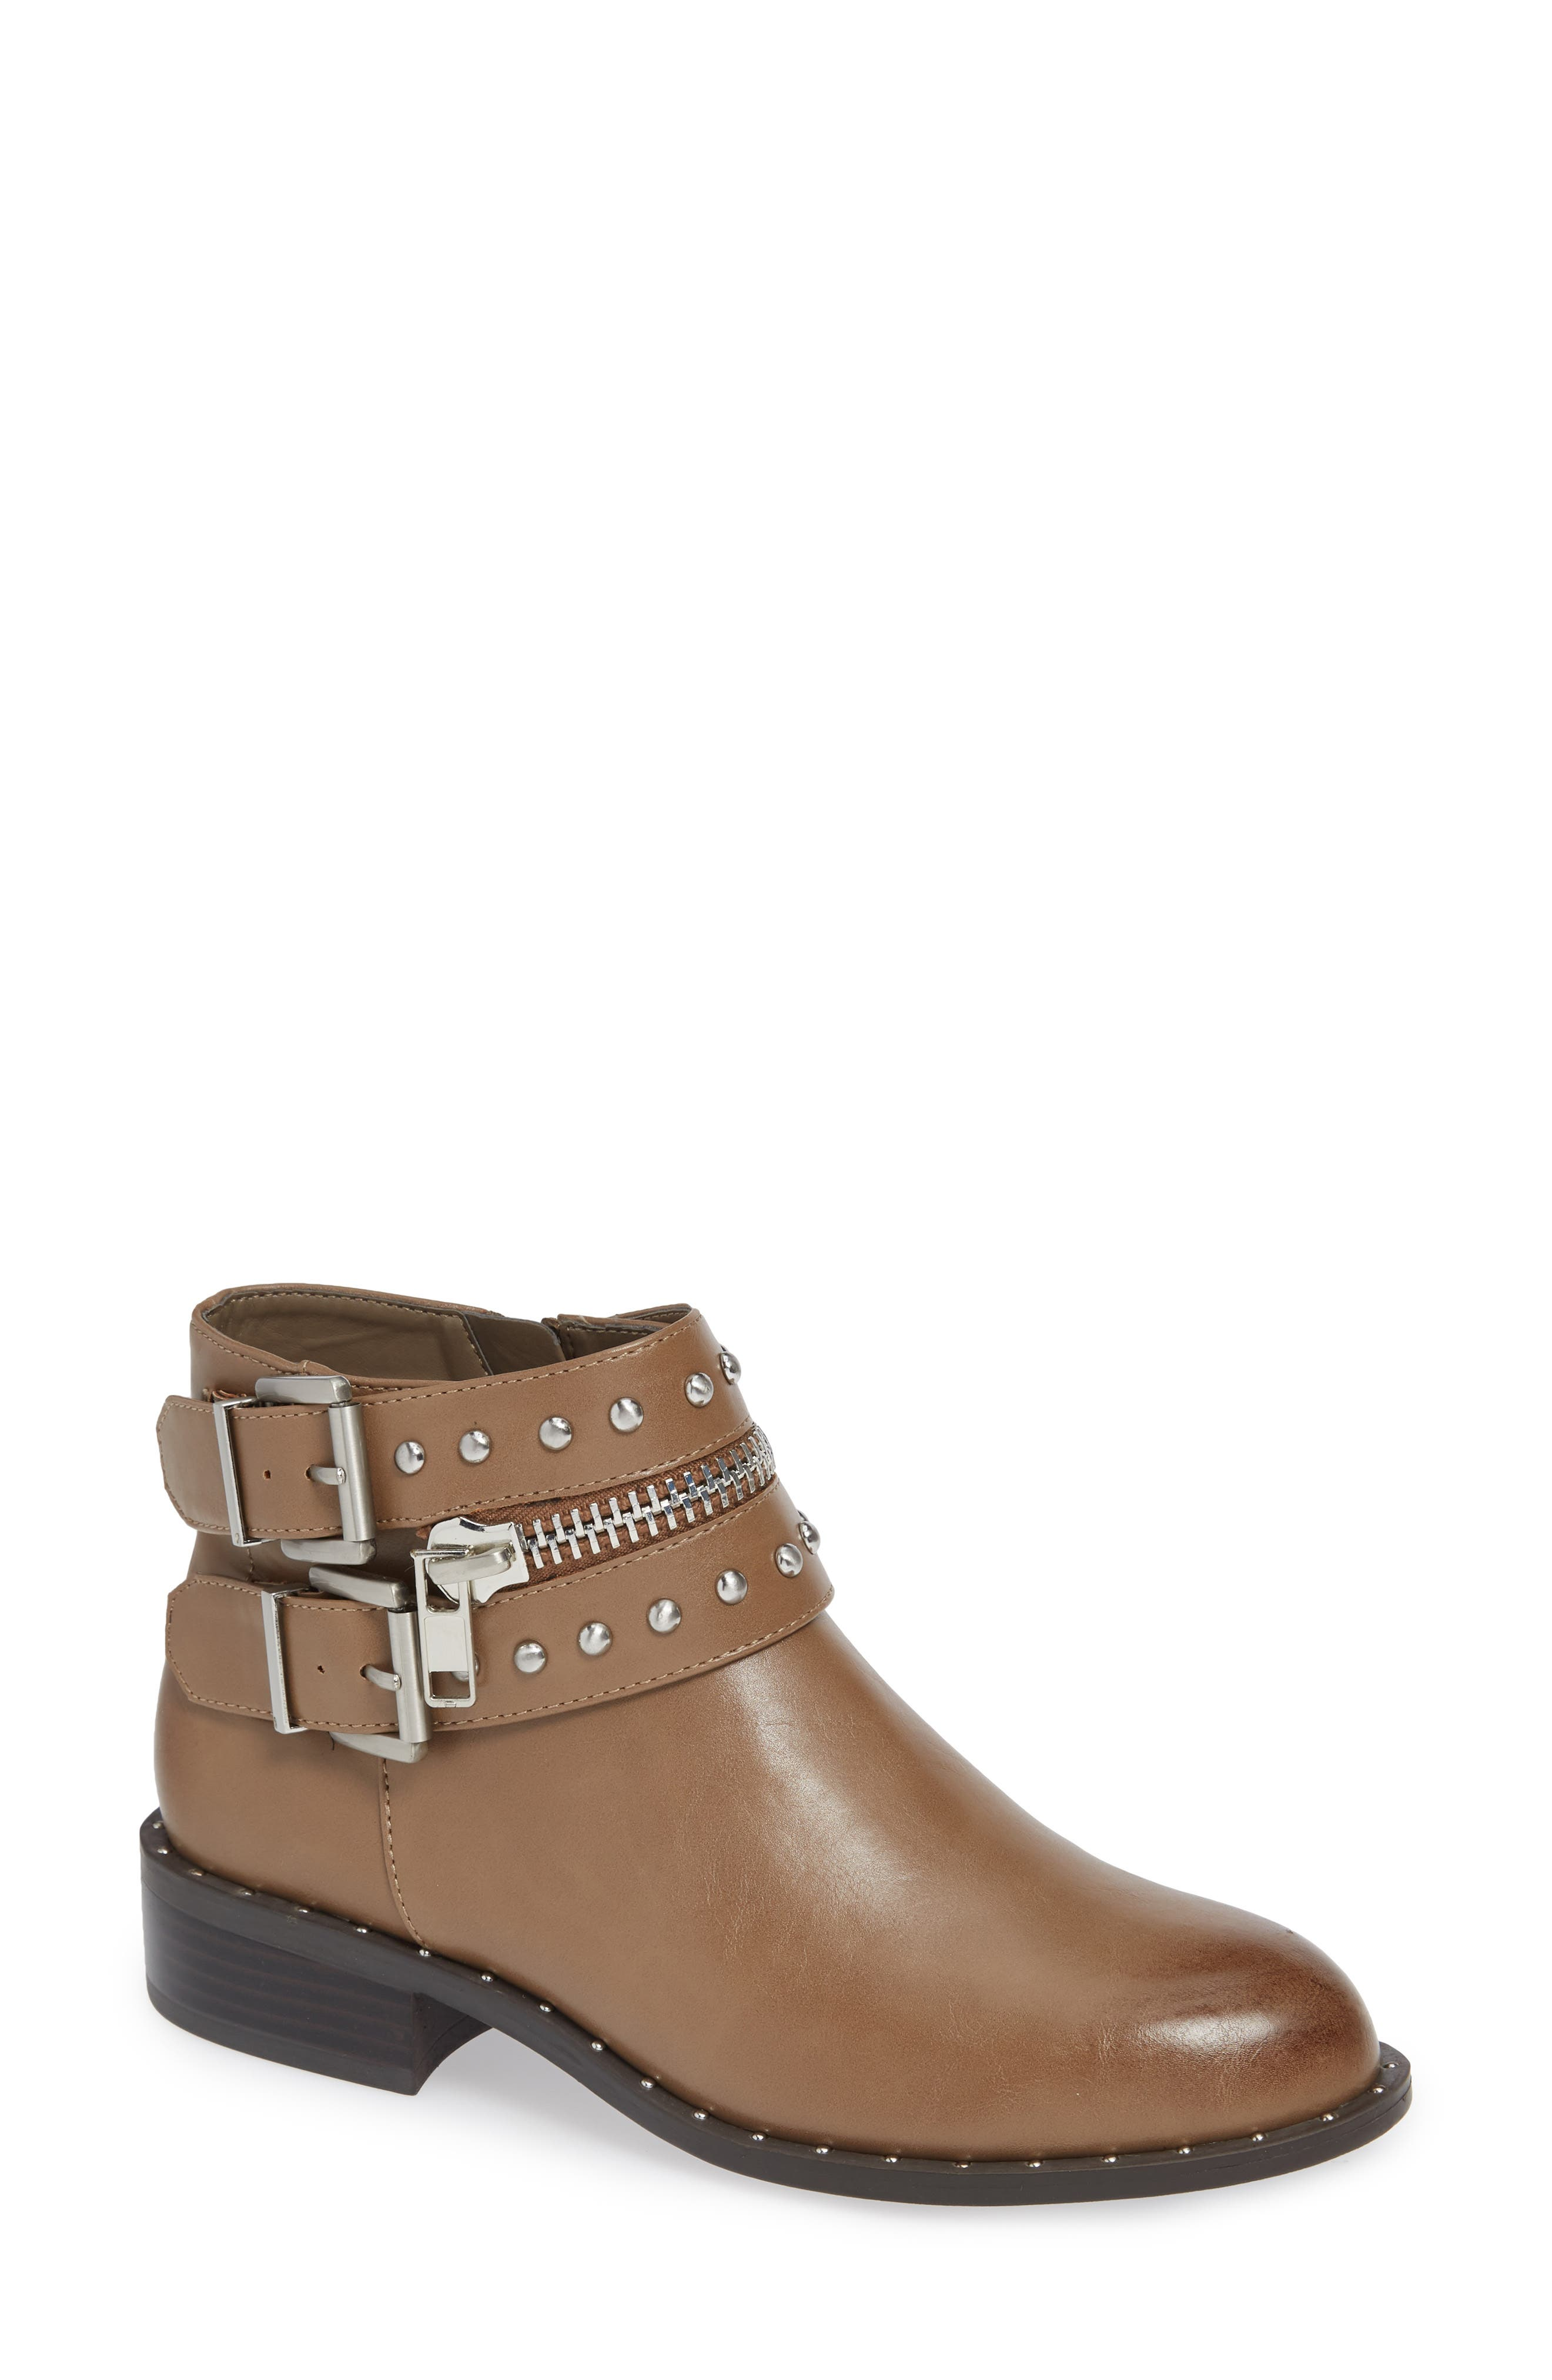 CHARLES BY CHARLES DAVID Thief Studded Bootie, Main, color, TAUPE SYNTHETIC